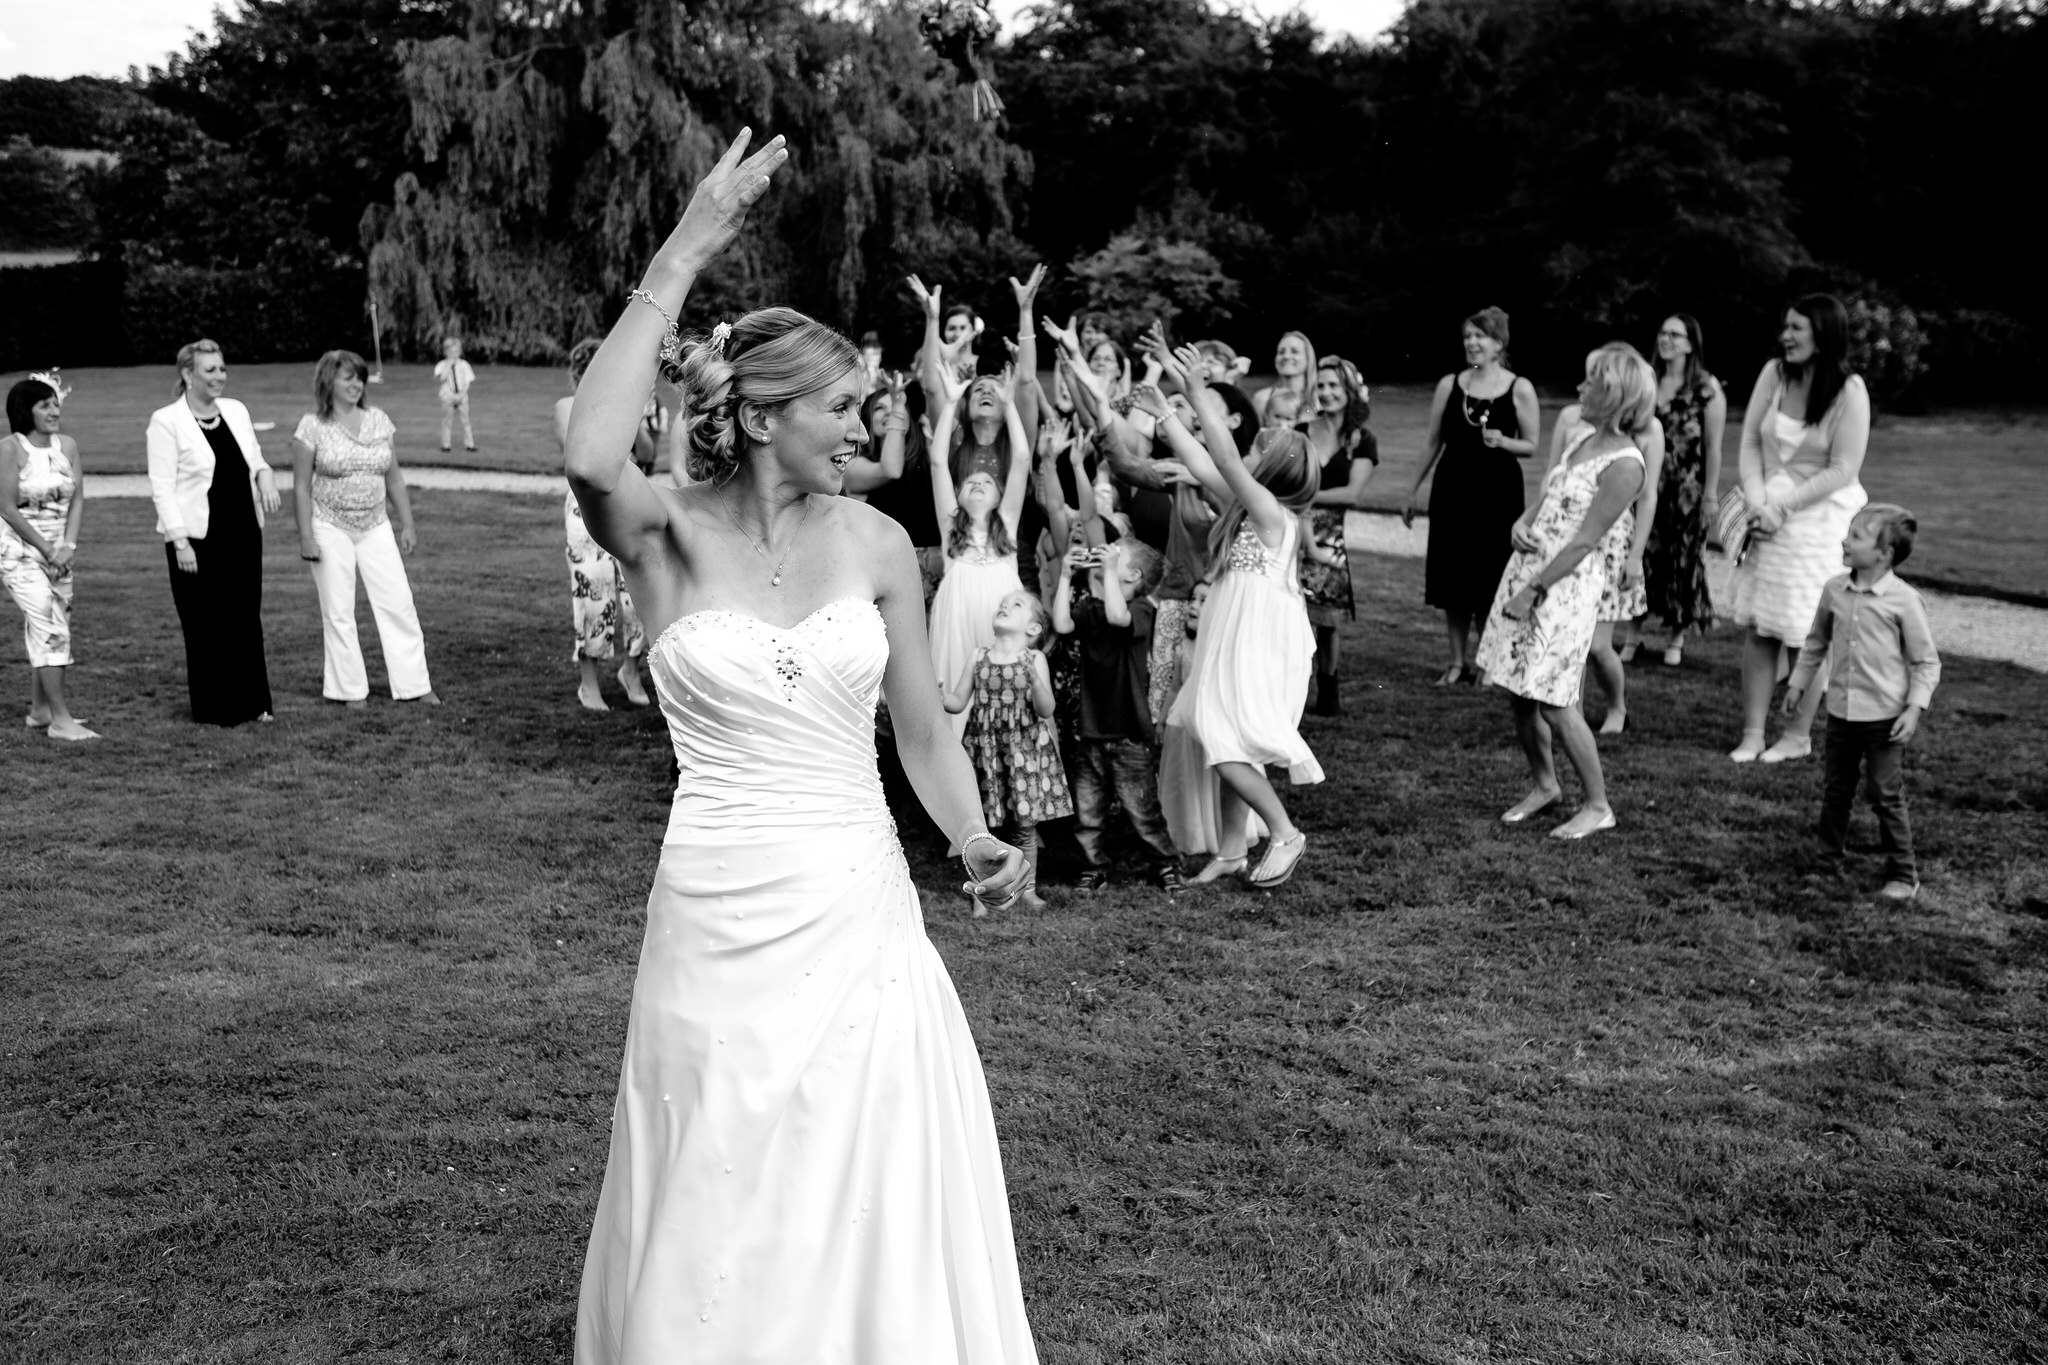 A bride tosses her bouquet at a wedding at Poundon House, Near Bicester Oxfordshire